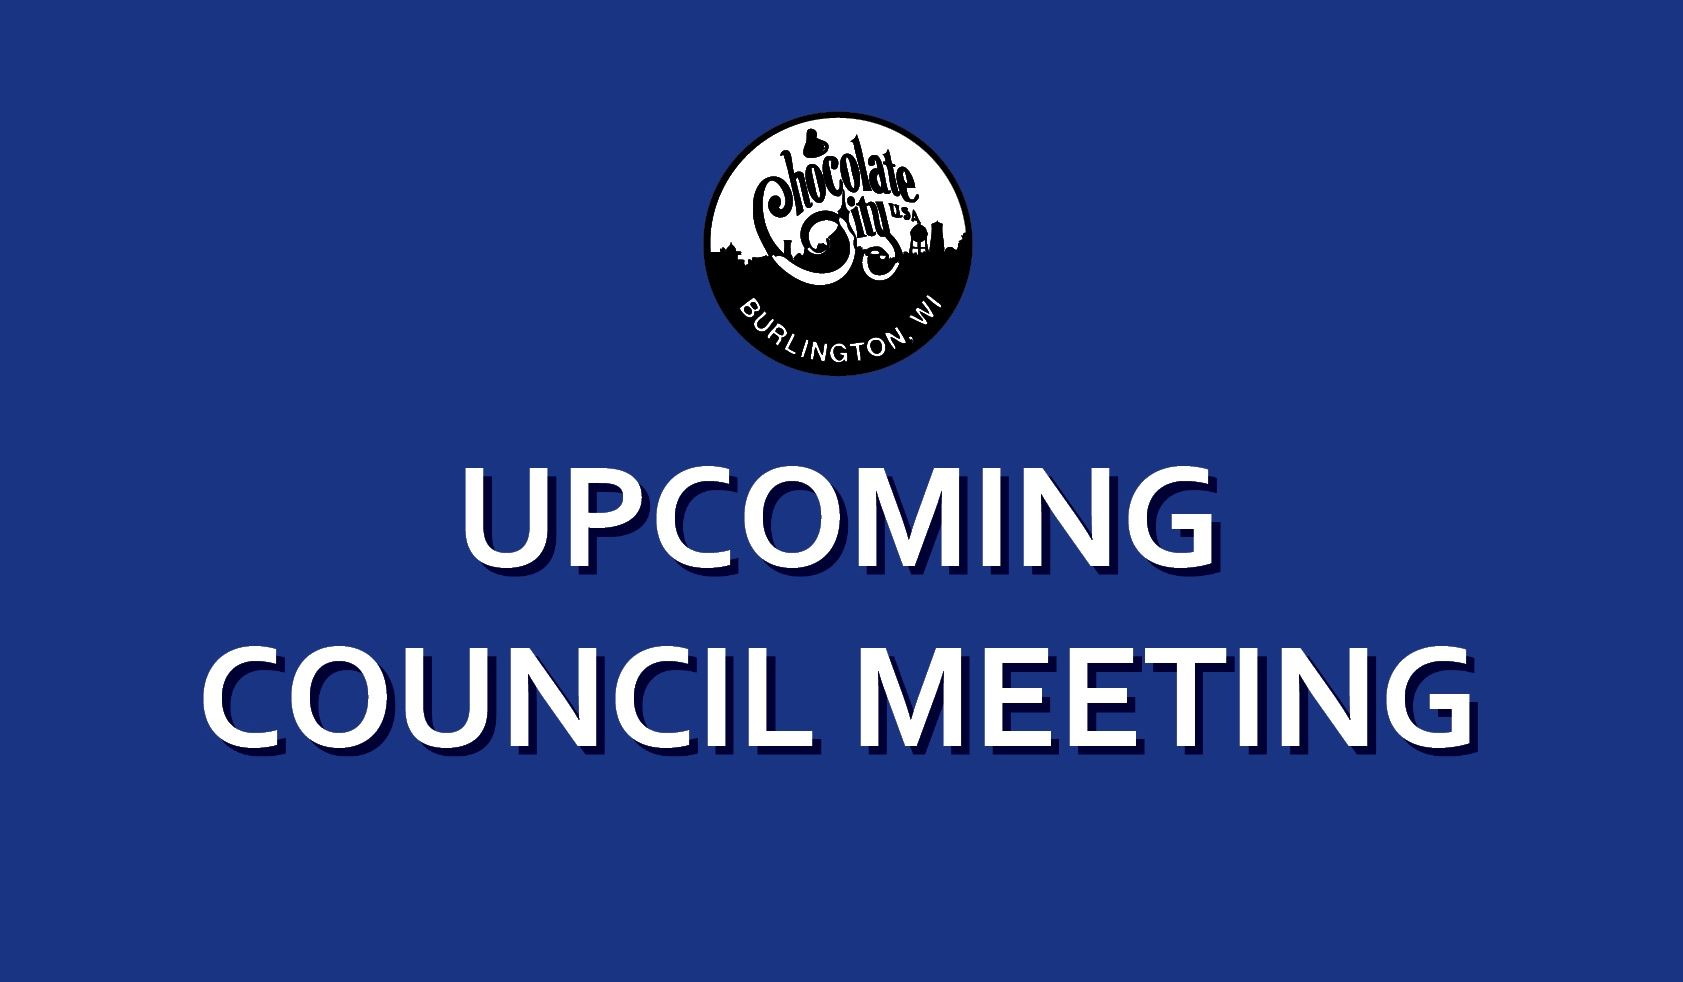 Upcoming Counci Meeting